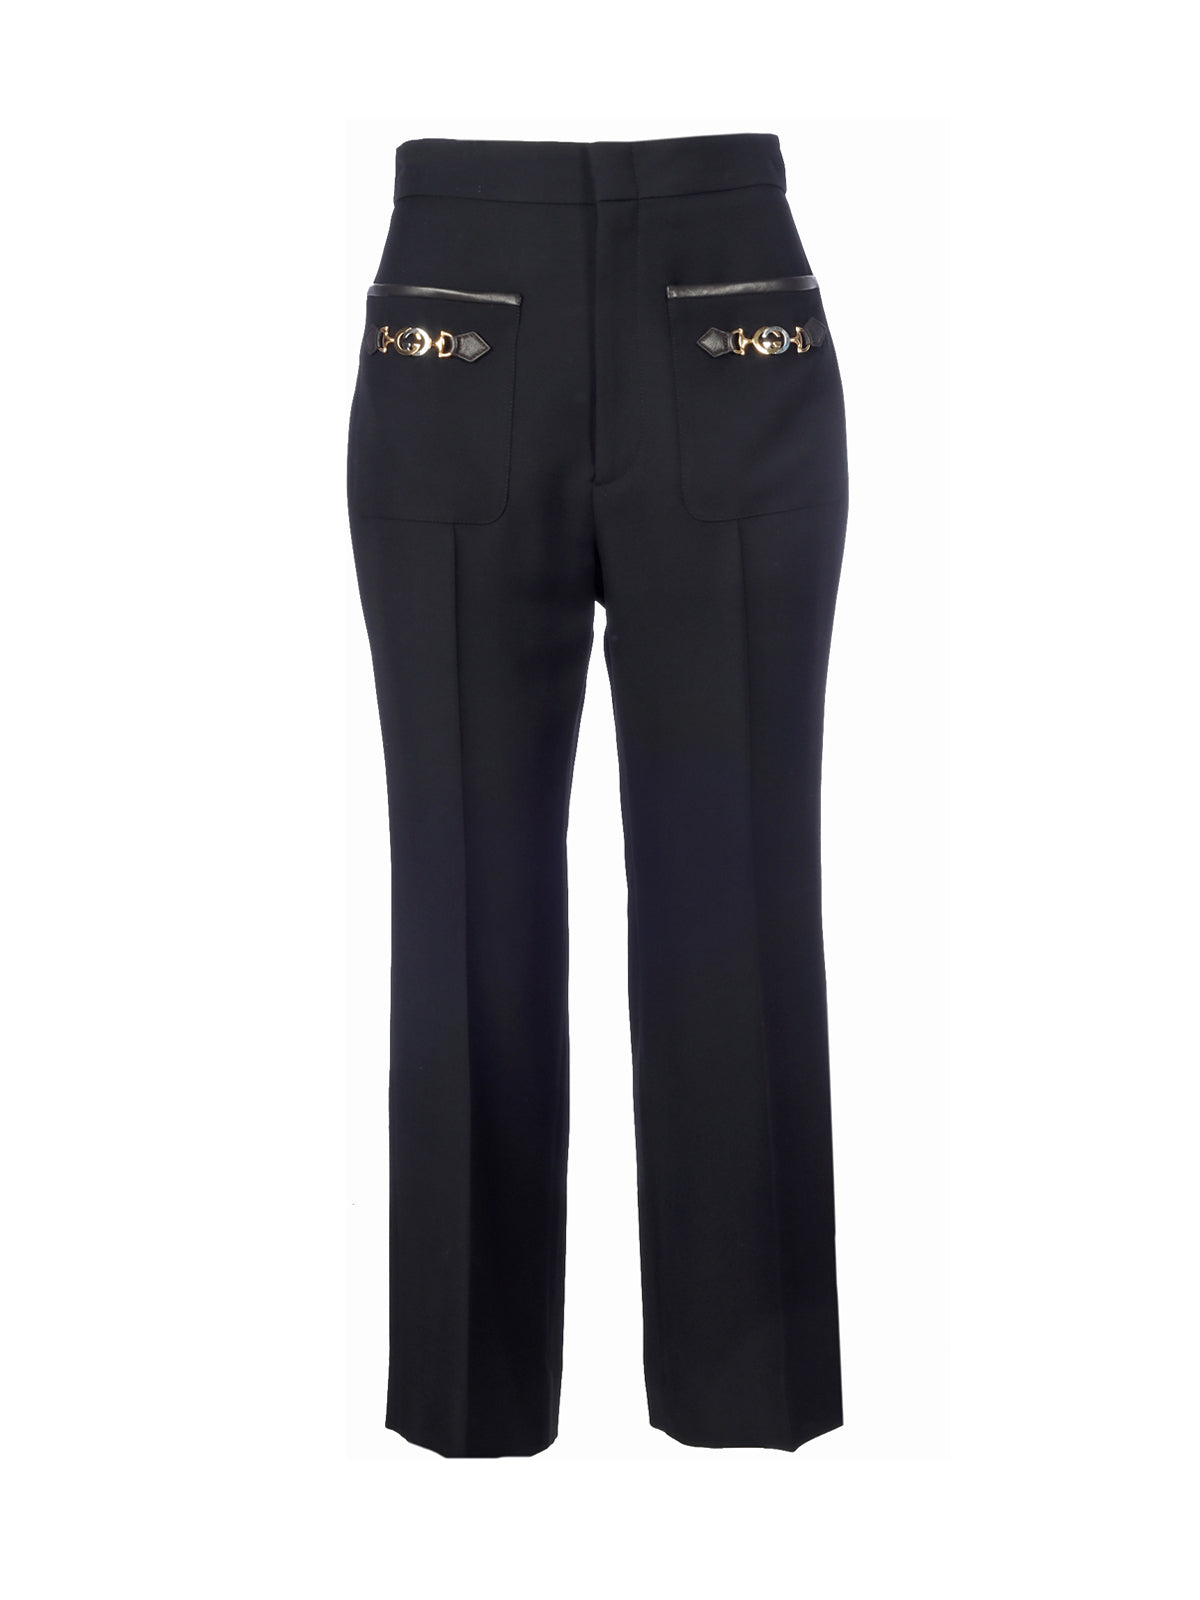 BUCKLES DETAIL TROUSERS